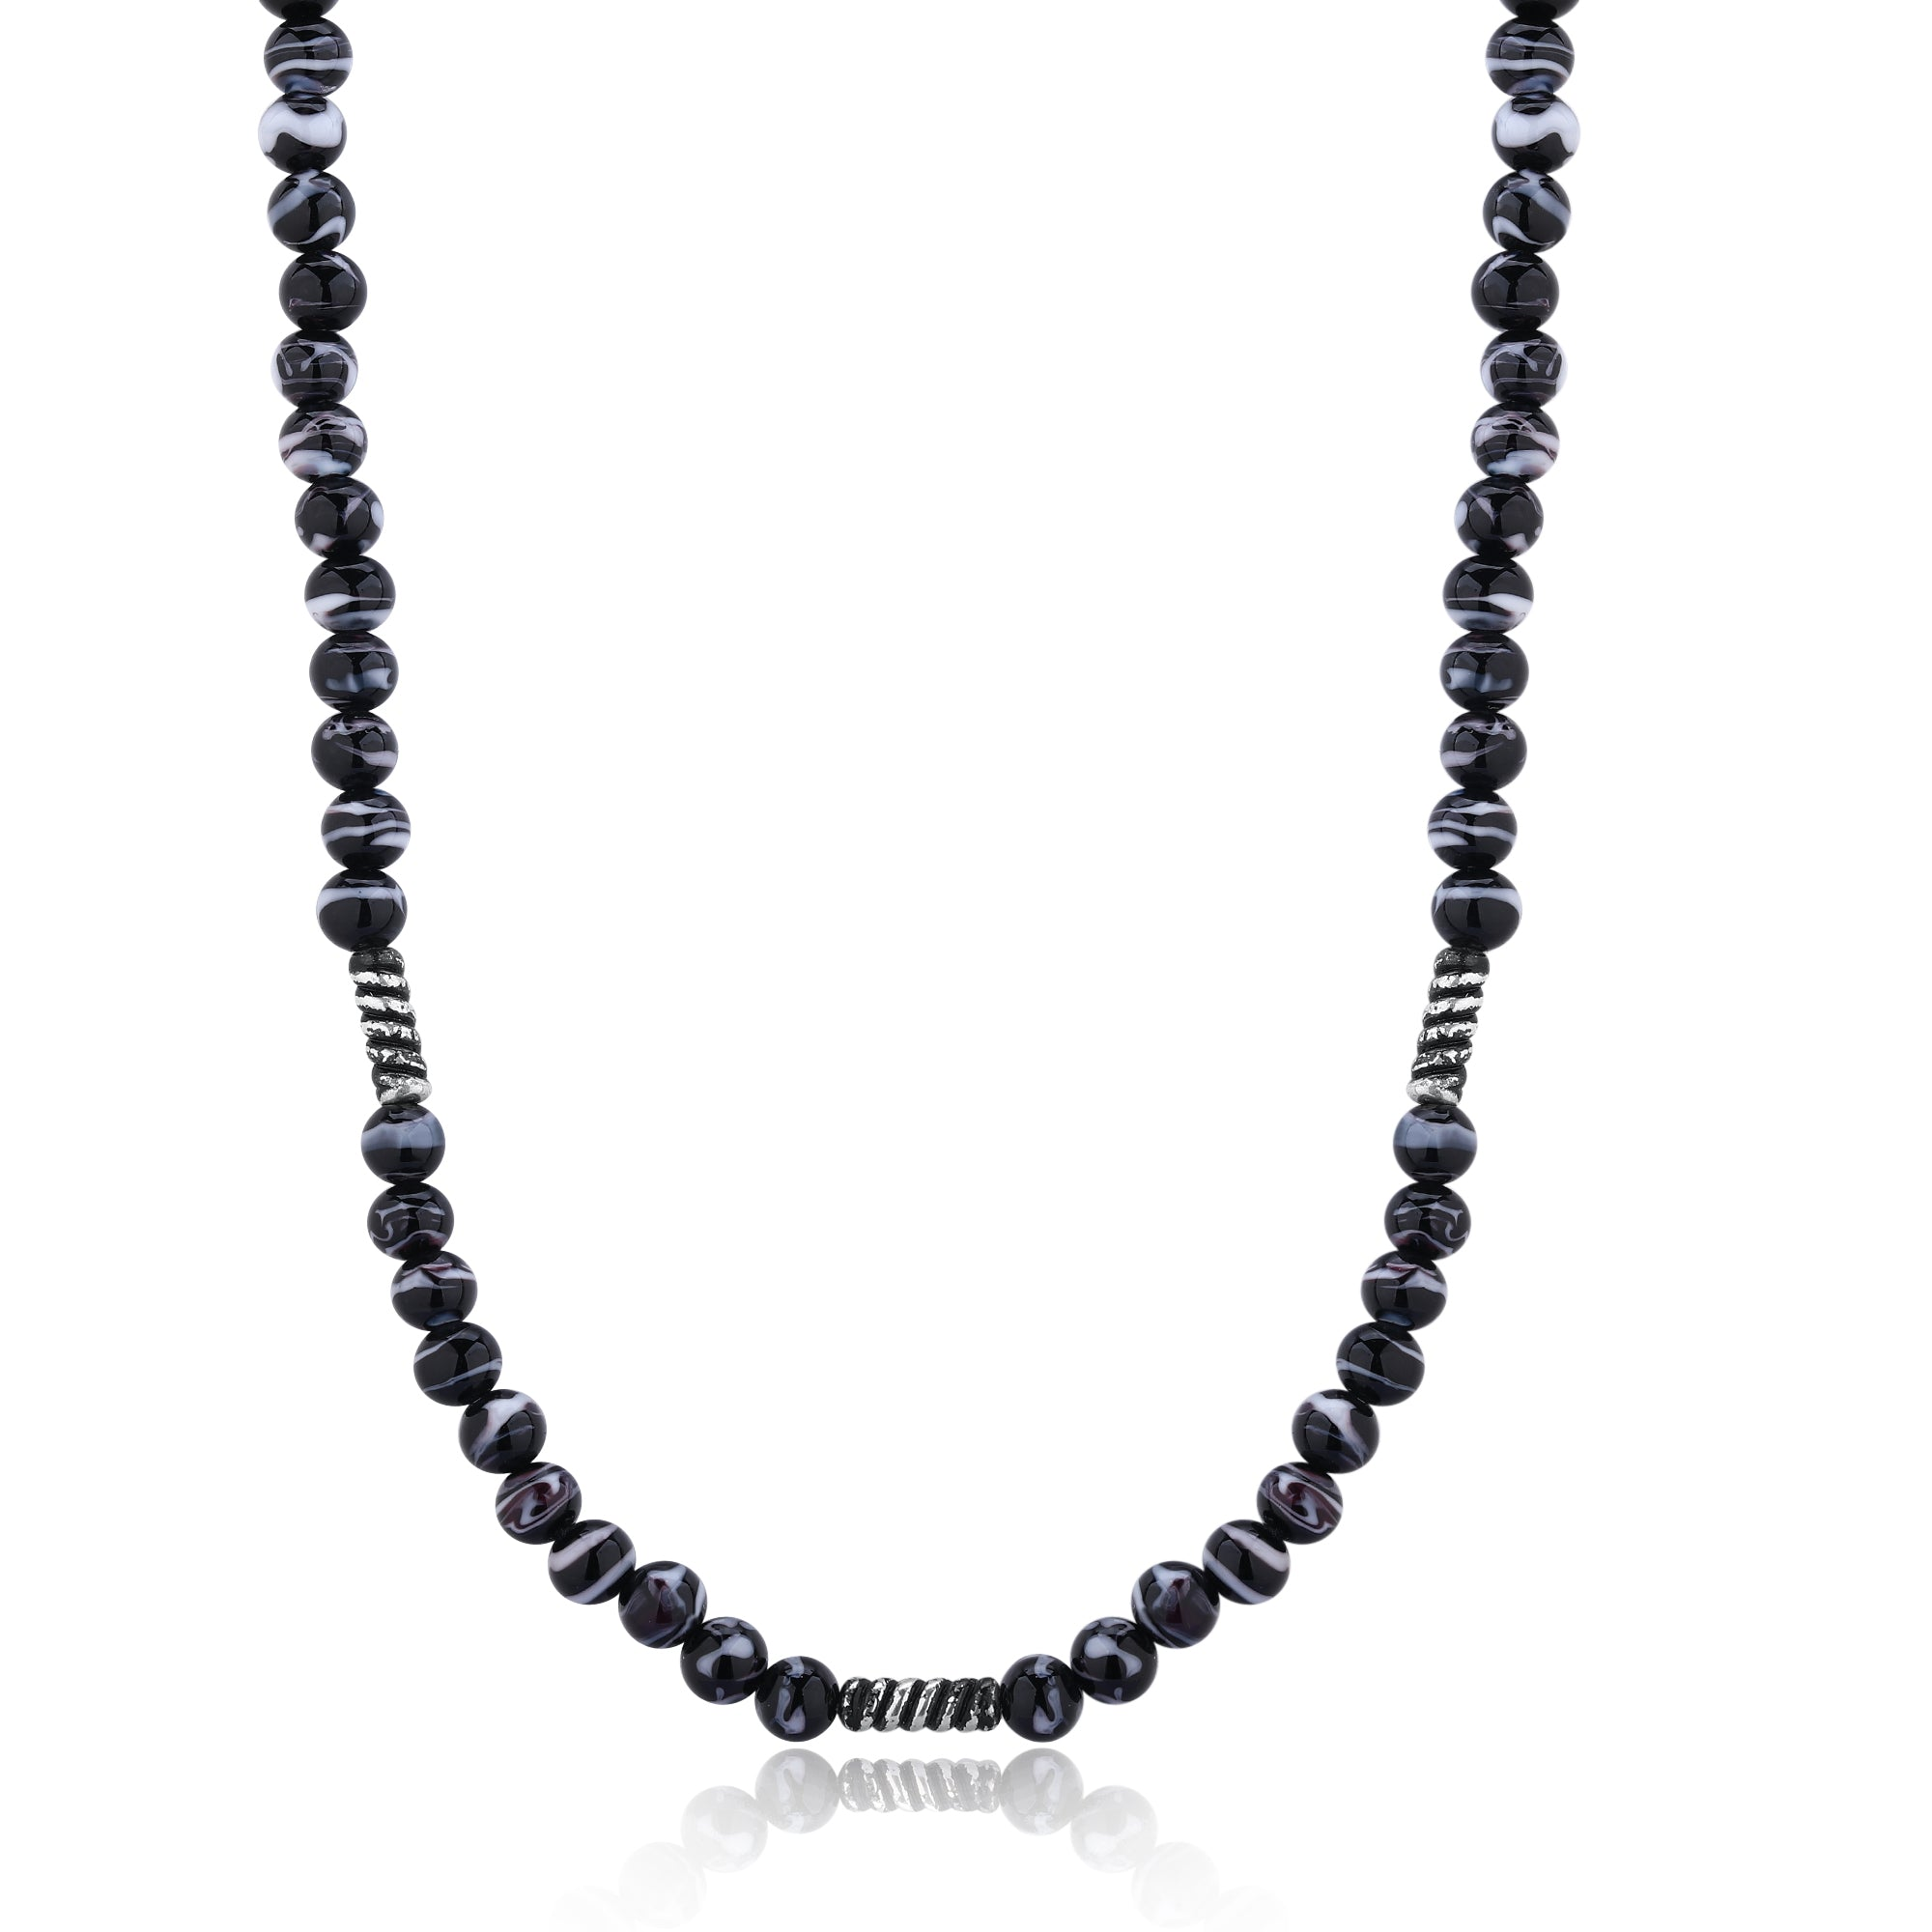 Black-Gray Murano Glass Bead Necklace